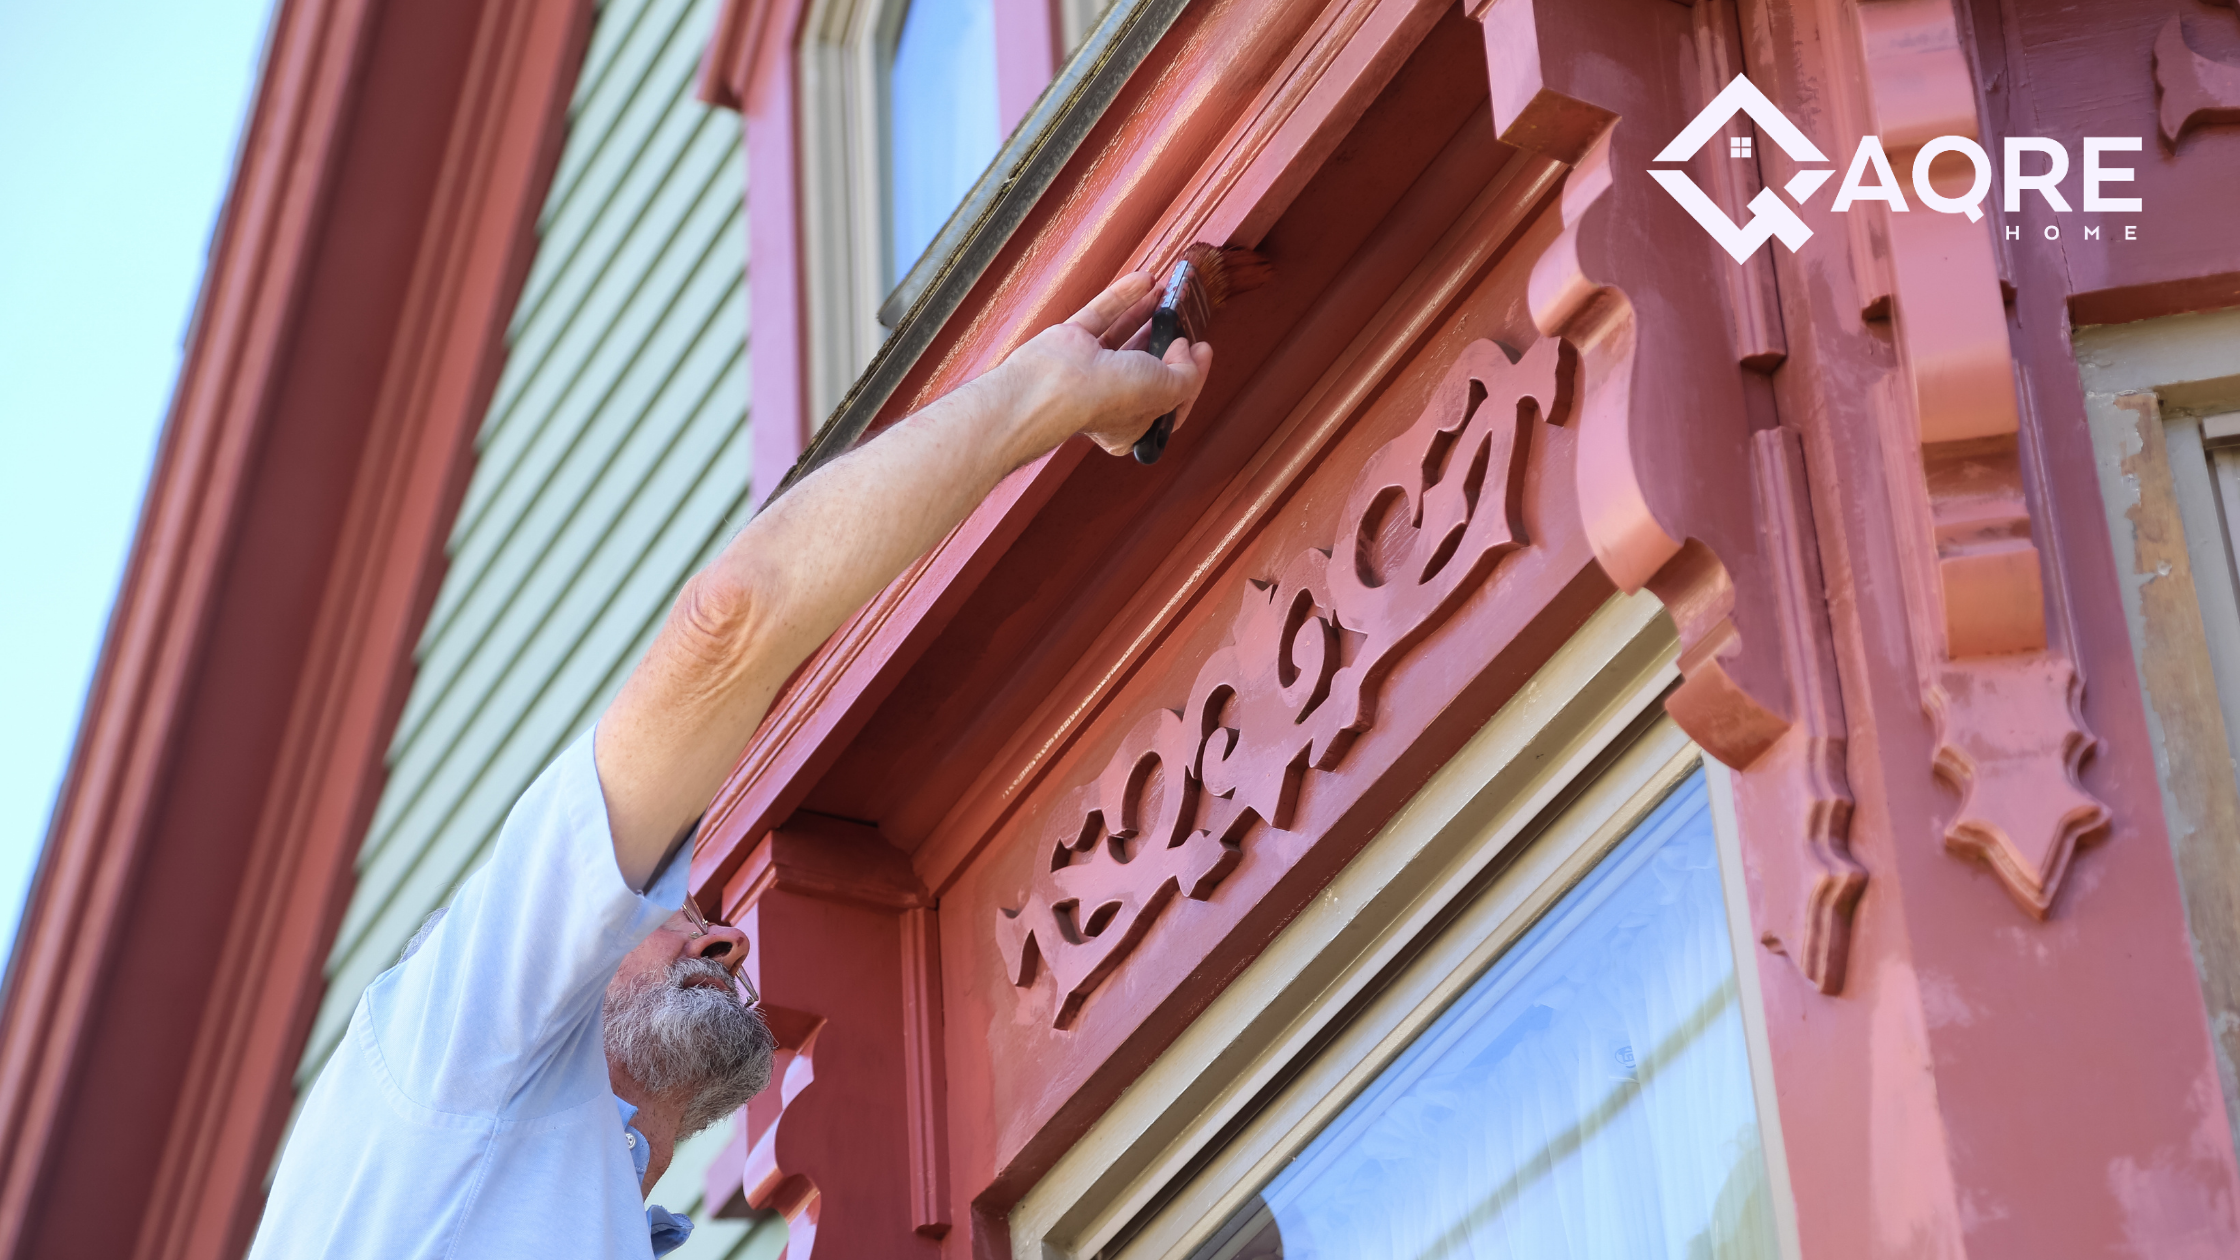 Check These 3 Flaws Before Buying an Older Home, They Could Spell Trouble